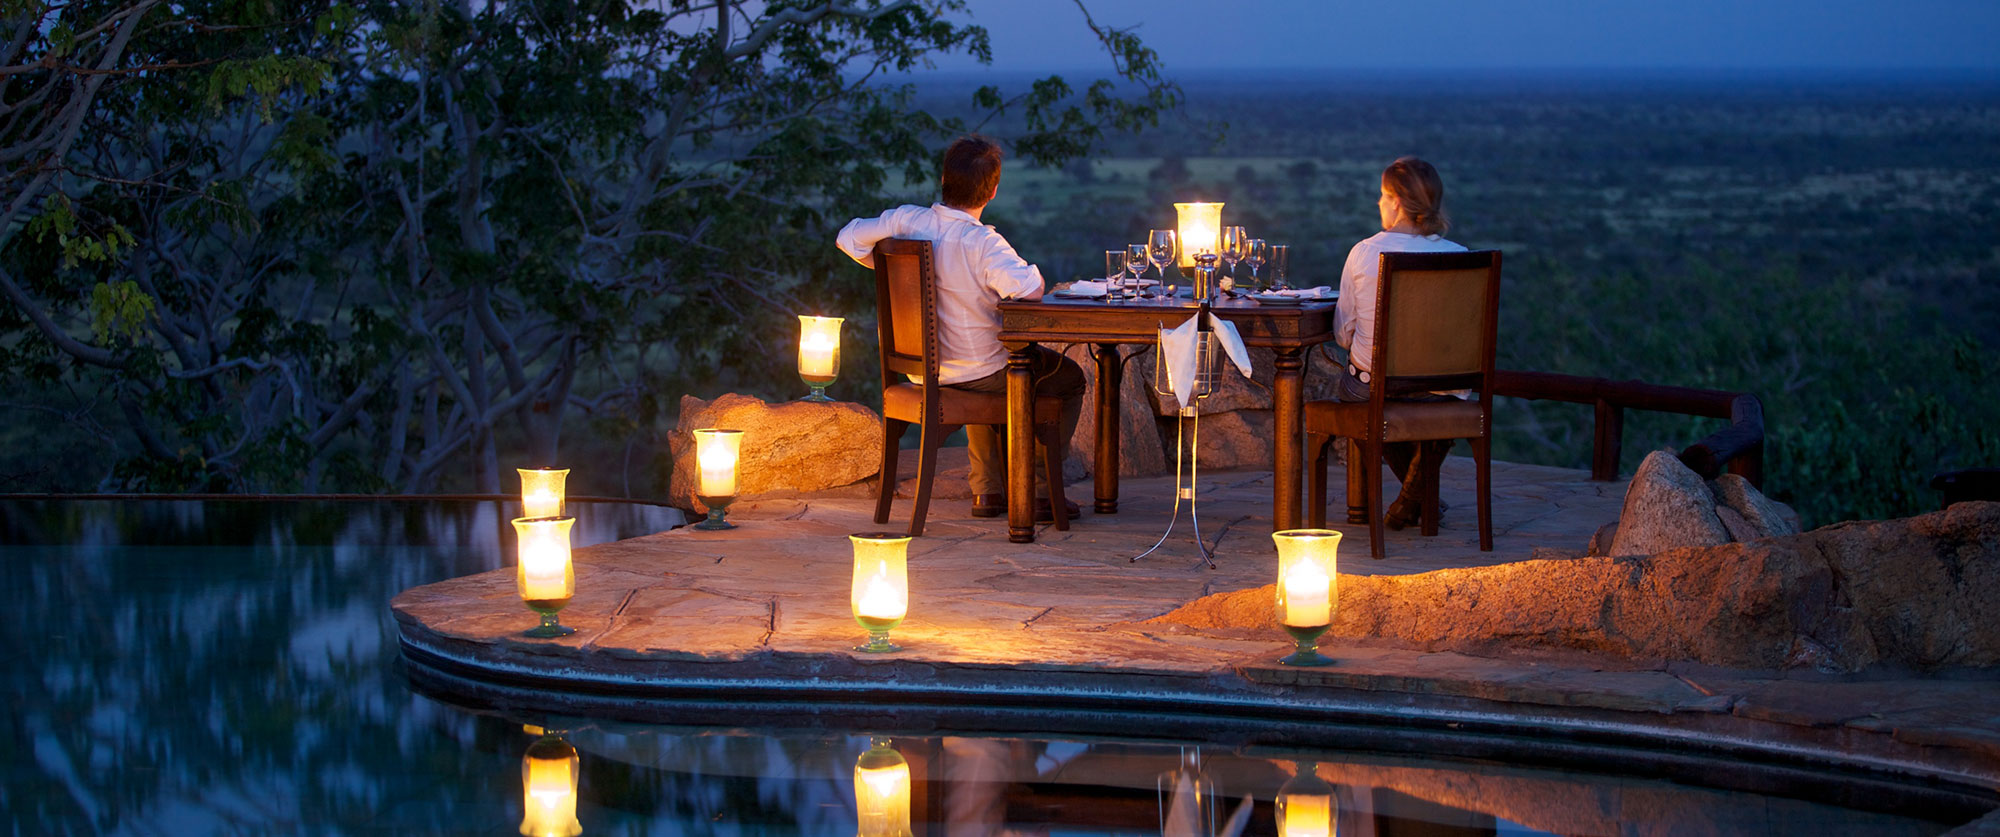 Private Dining at Elsa's Kopje Safari Lodge, Kenya